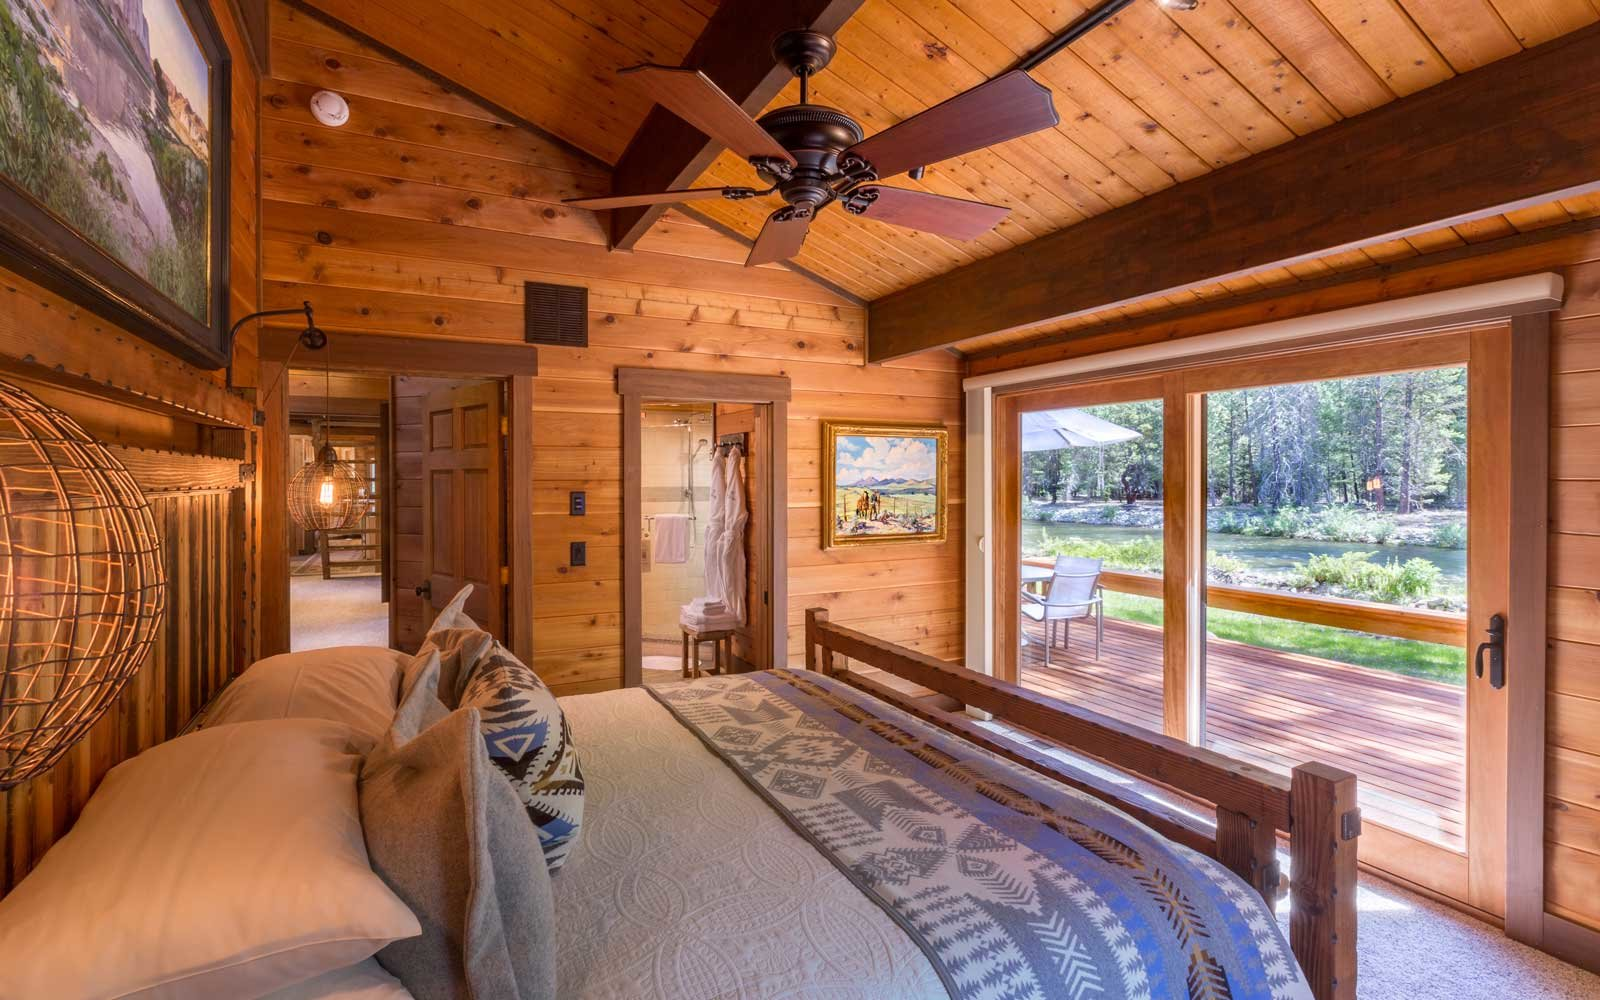 Room with a view at Triple Creek Ranch in Montana